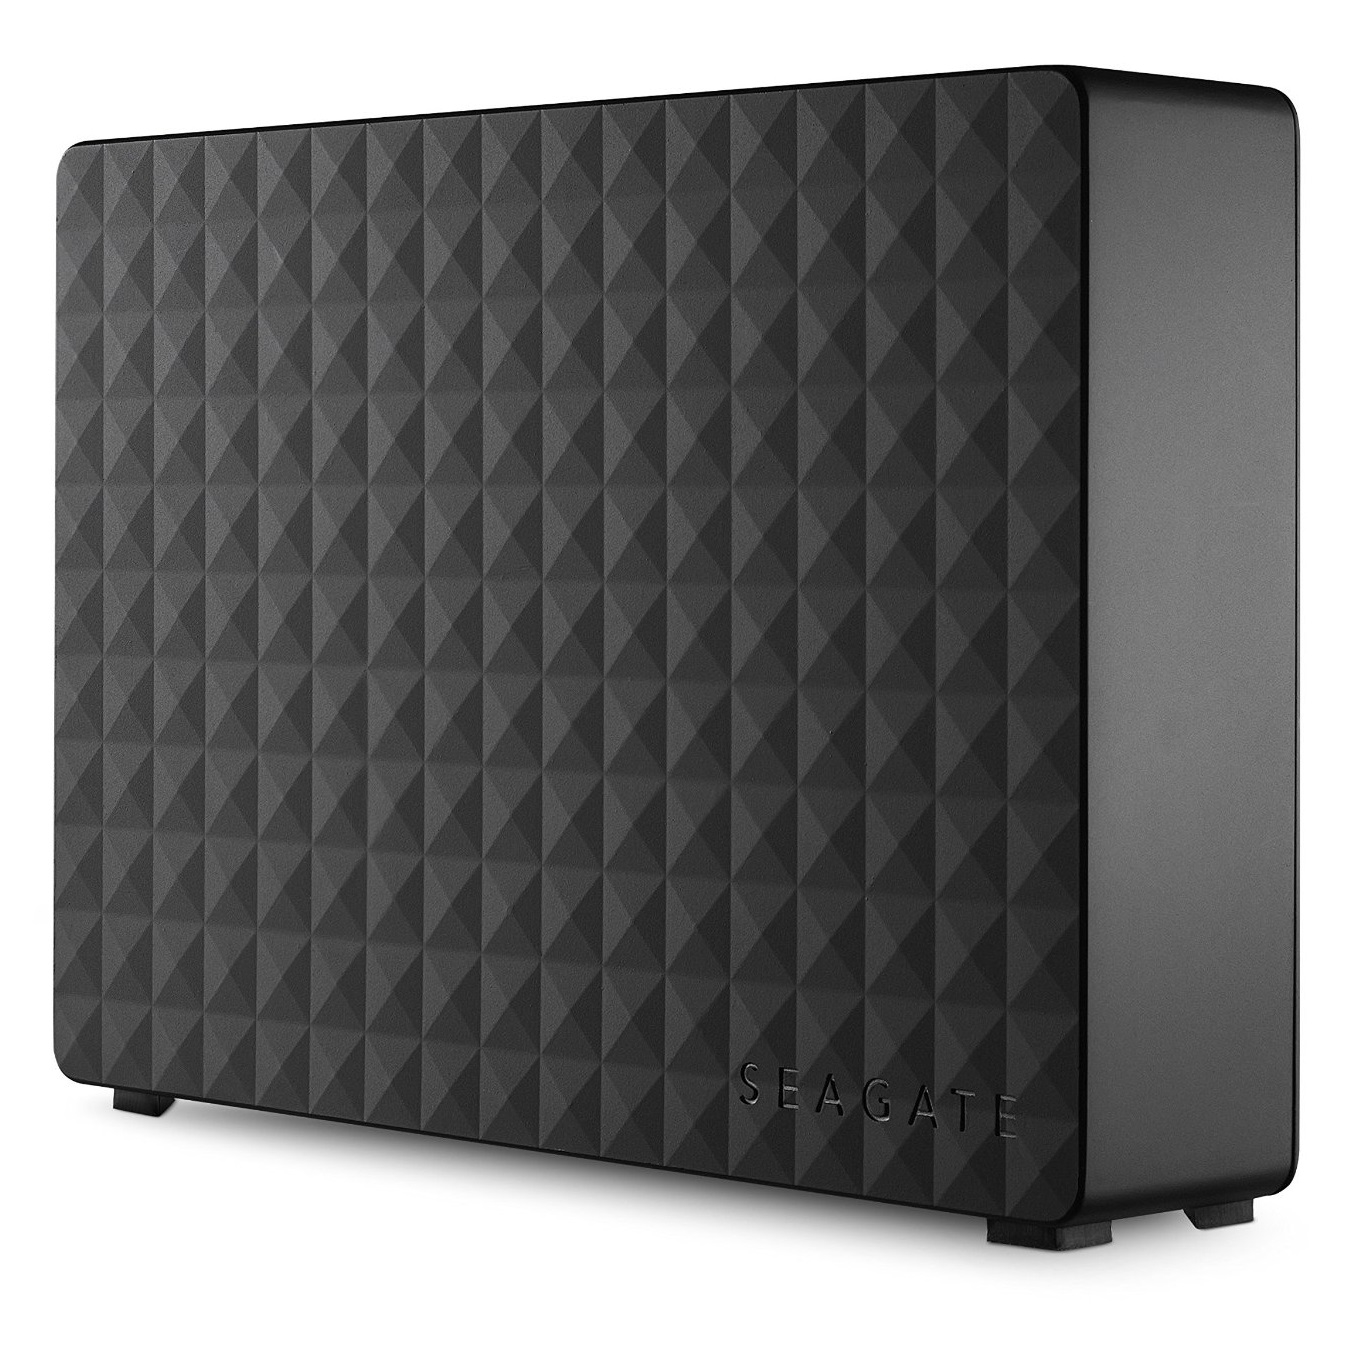 Original Seagate Expansion 2TB 3.5in USB 3.0 External Hard Drive (STEB2000200)